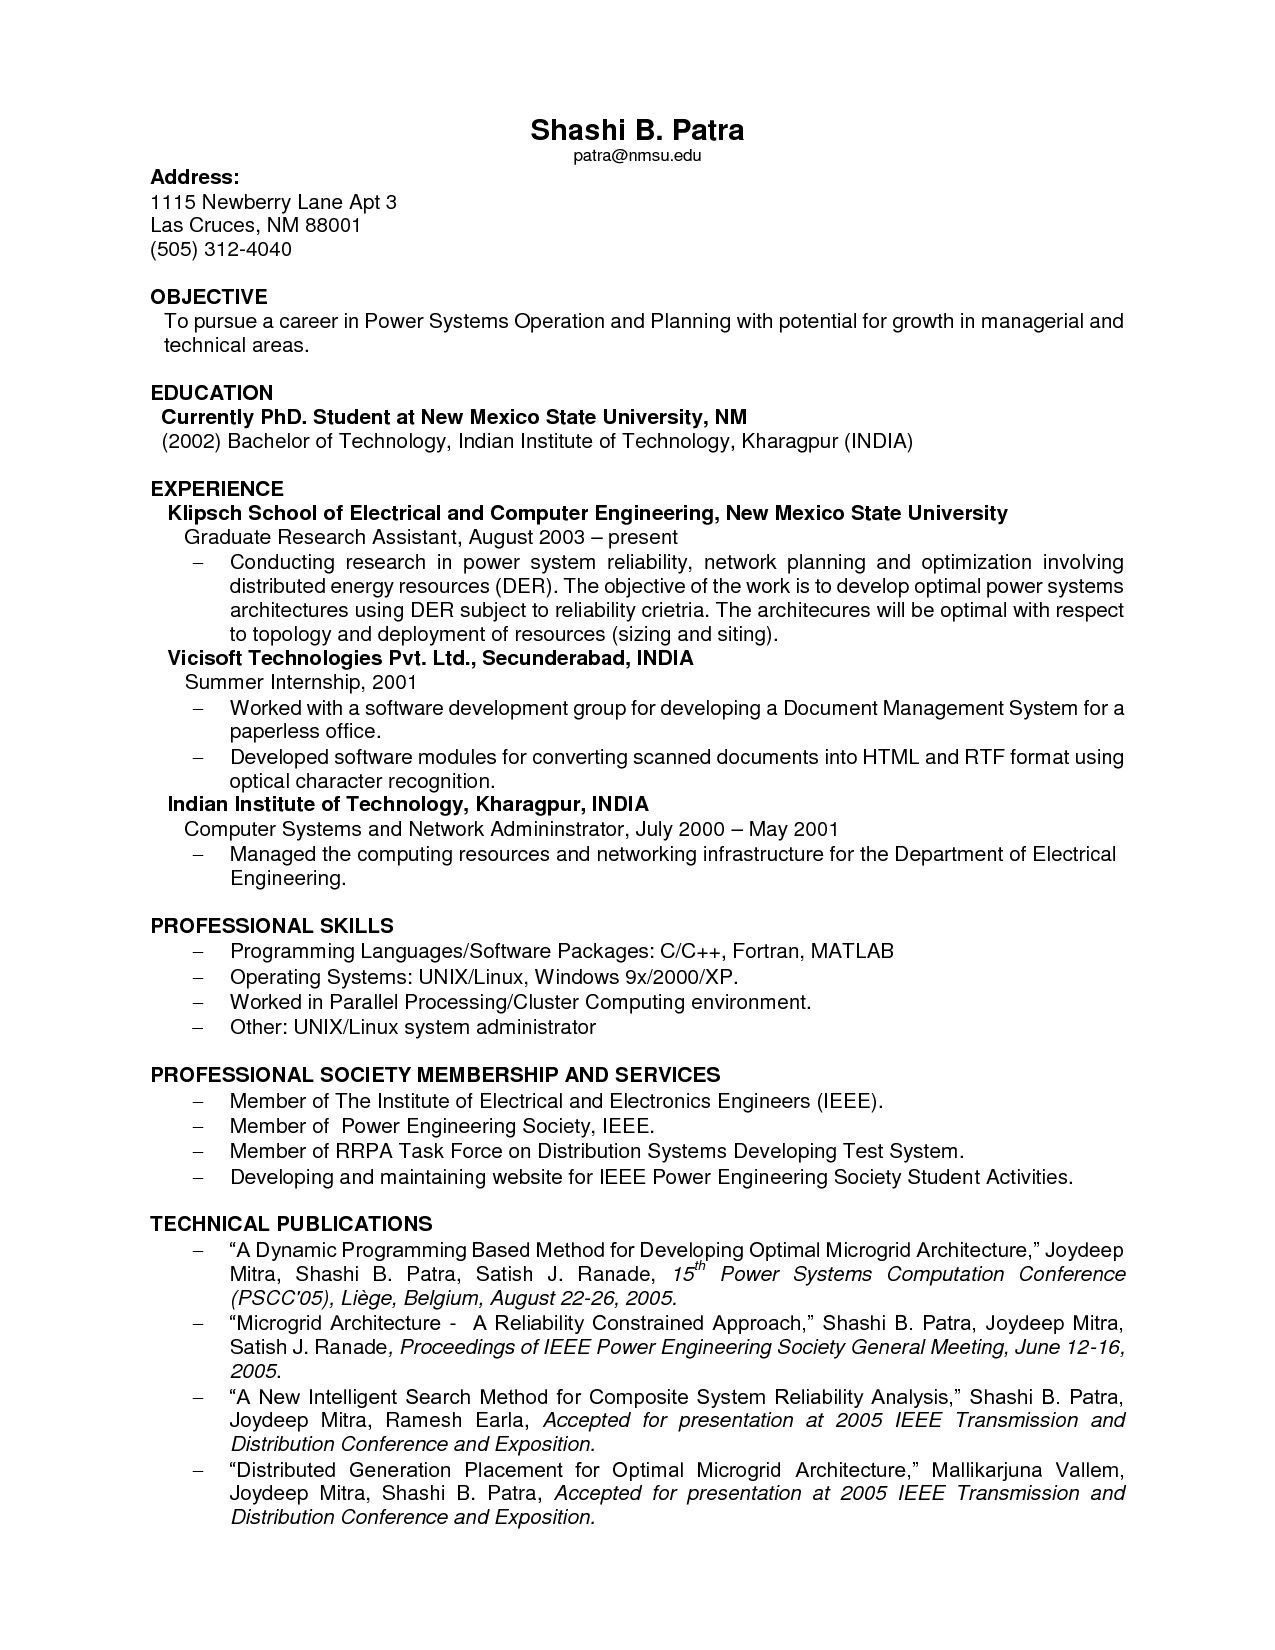 Resume Template for Kids - Resume Templates for Students with No Experience Valid Resume for No